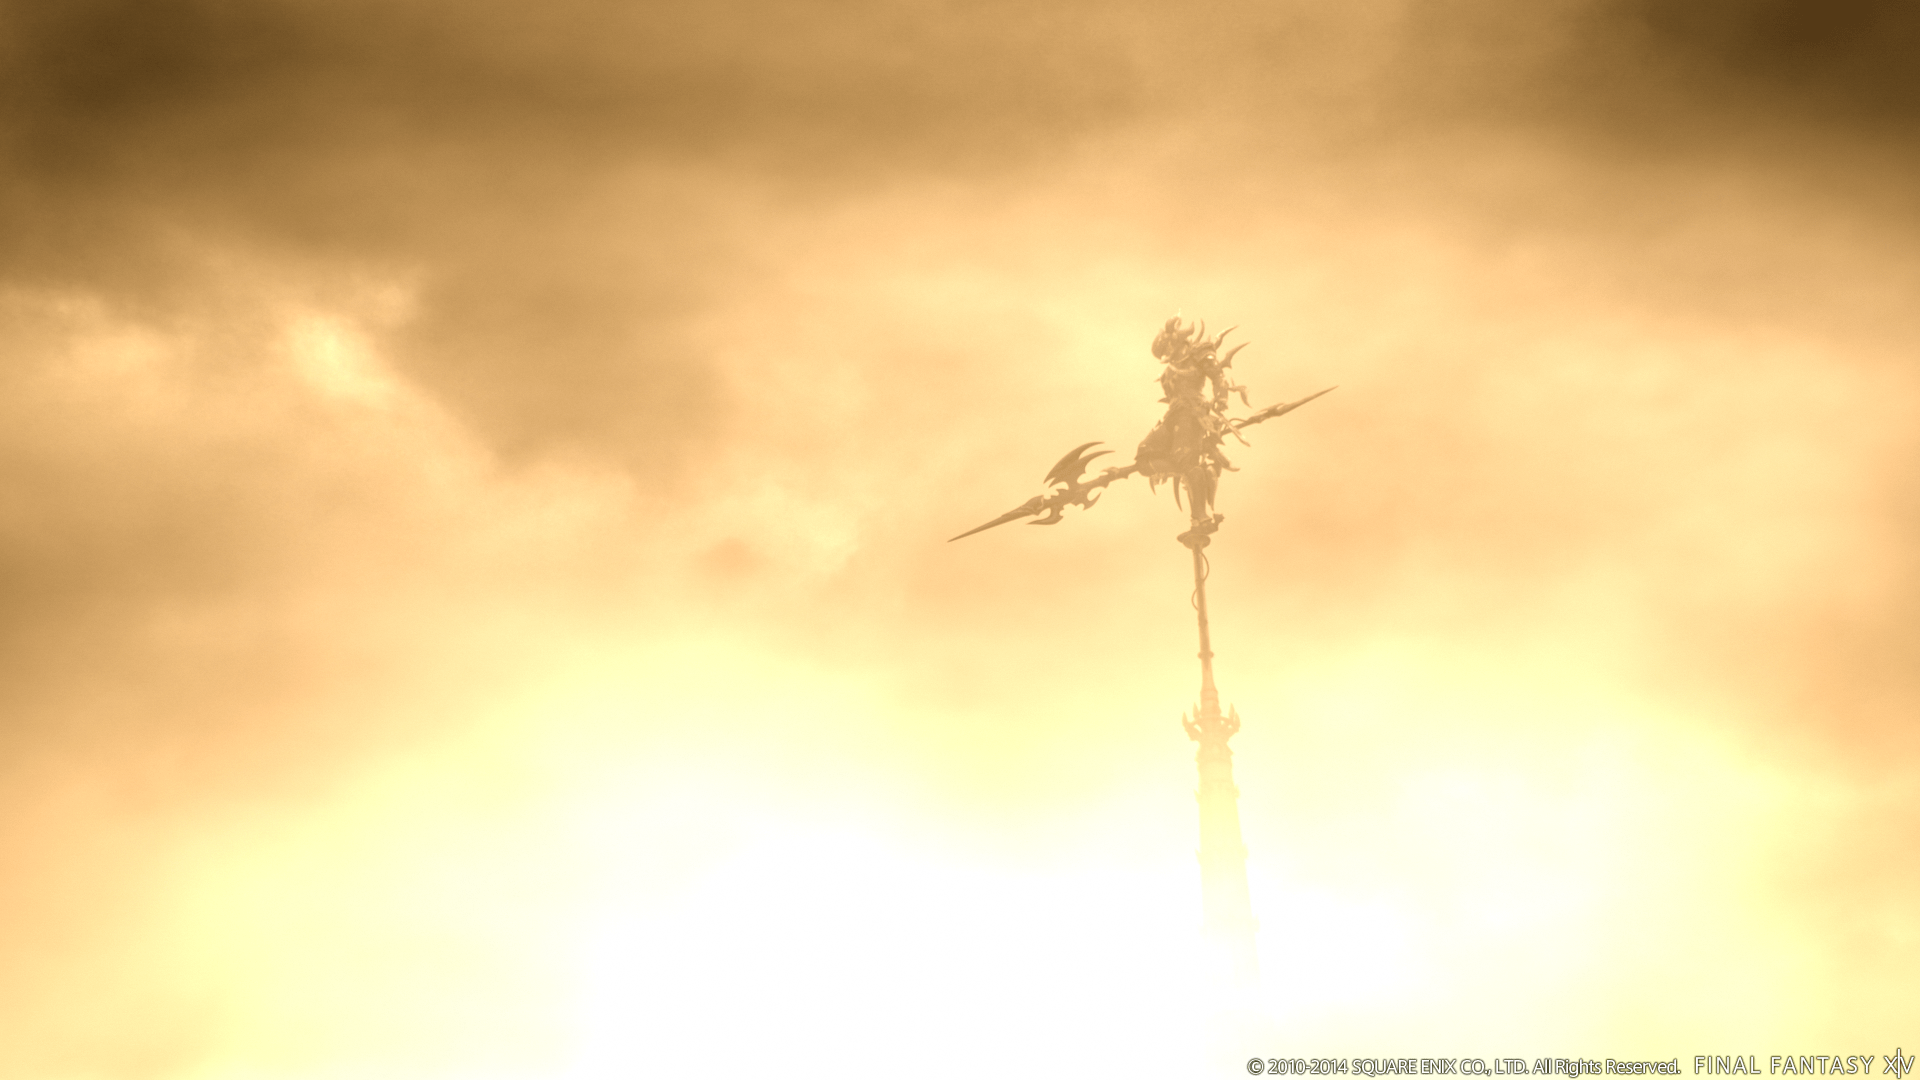 First Screenshots And Artwork For Final Fantasy XIV